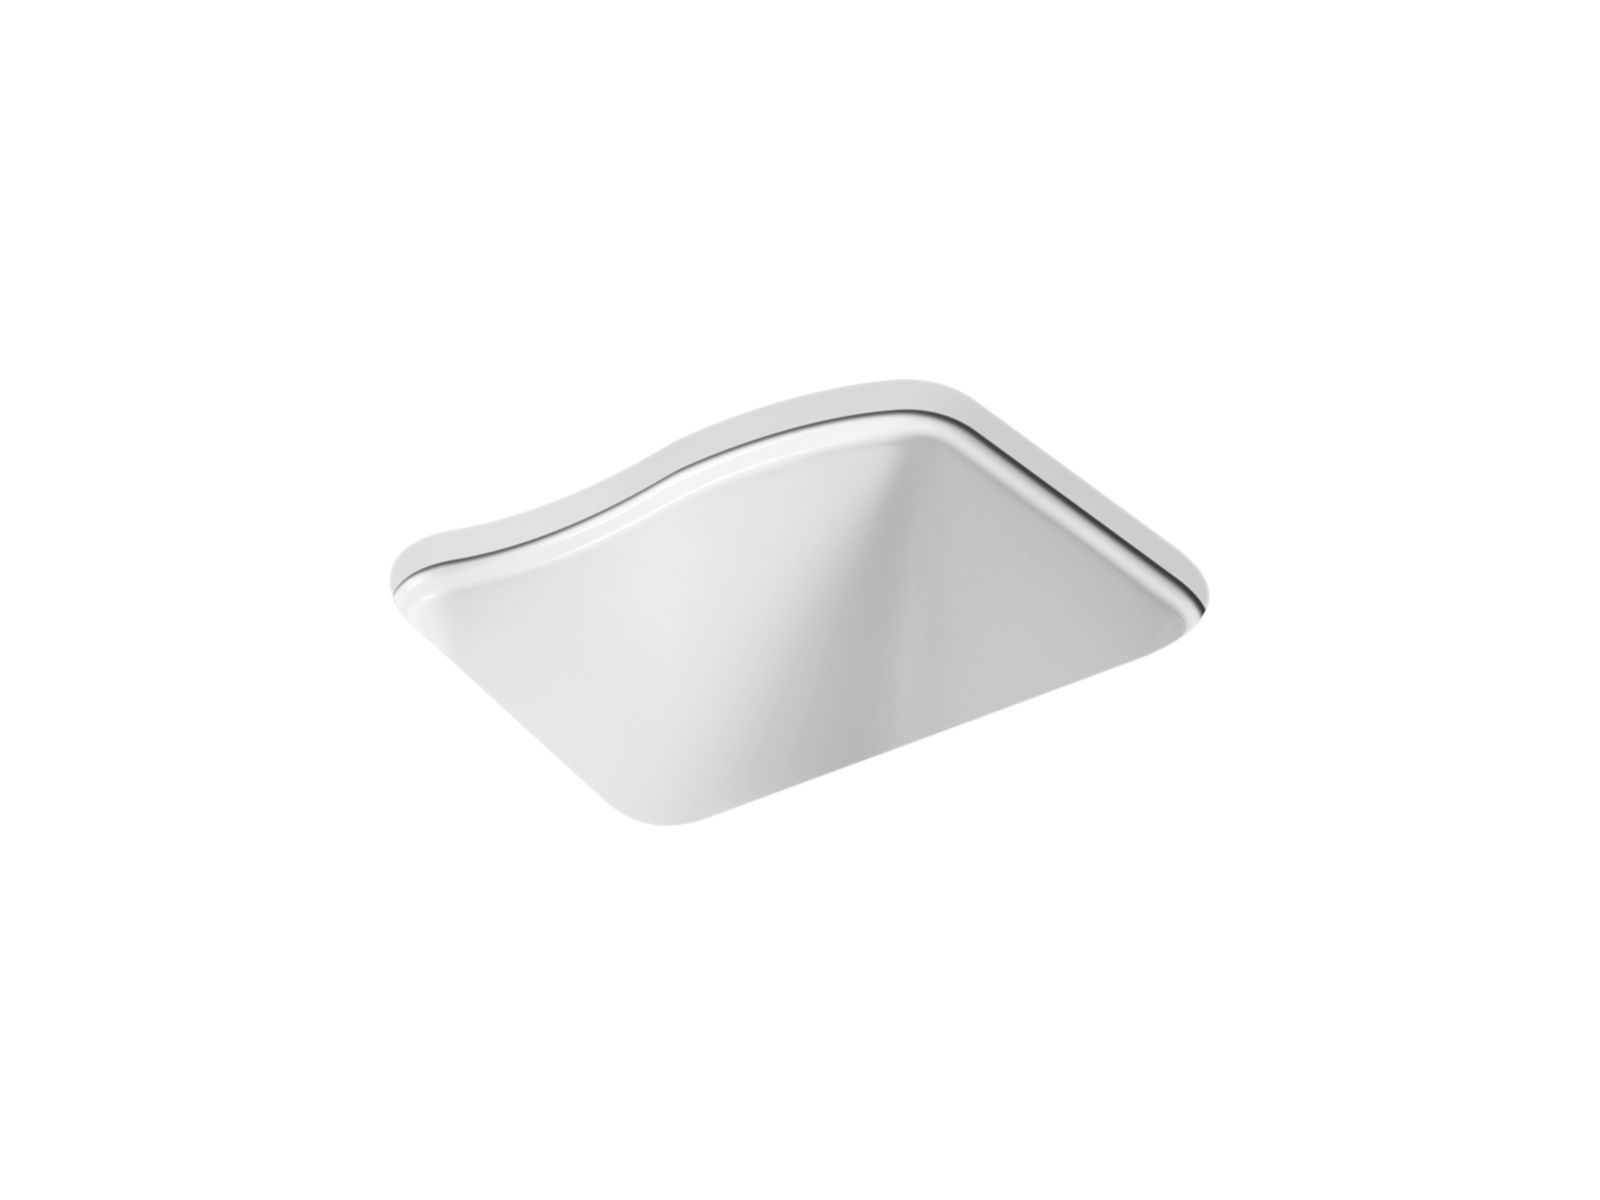 River Falls 25 X 22 X 14 15 16 Undermount Utility Sink With 4